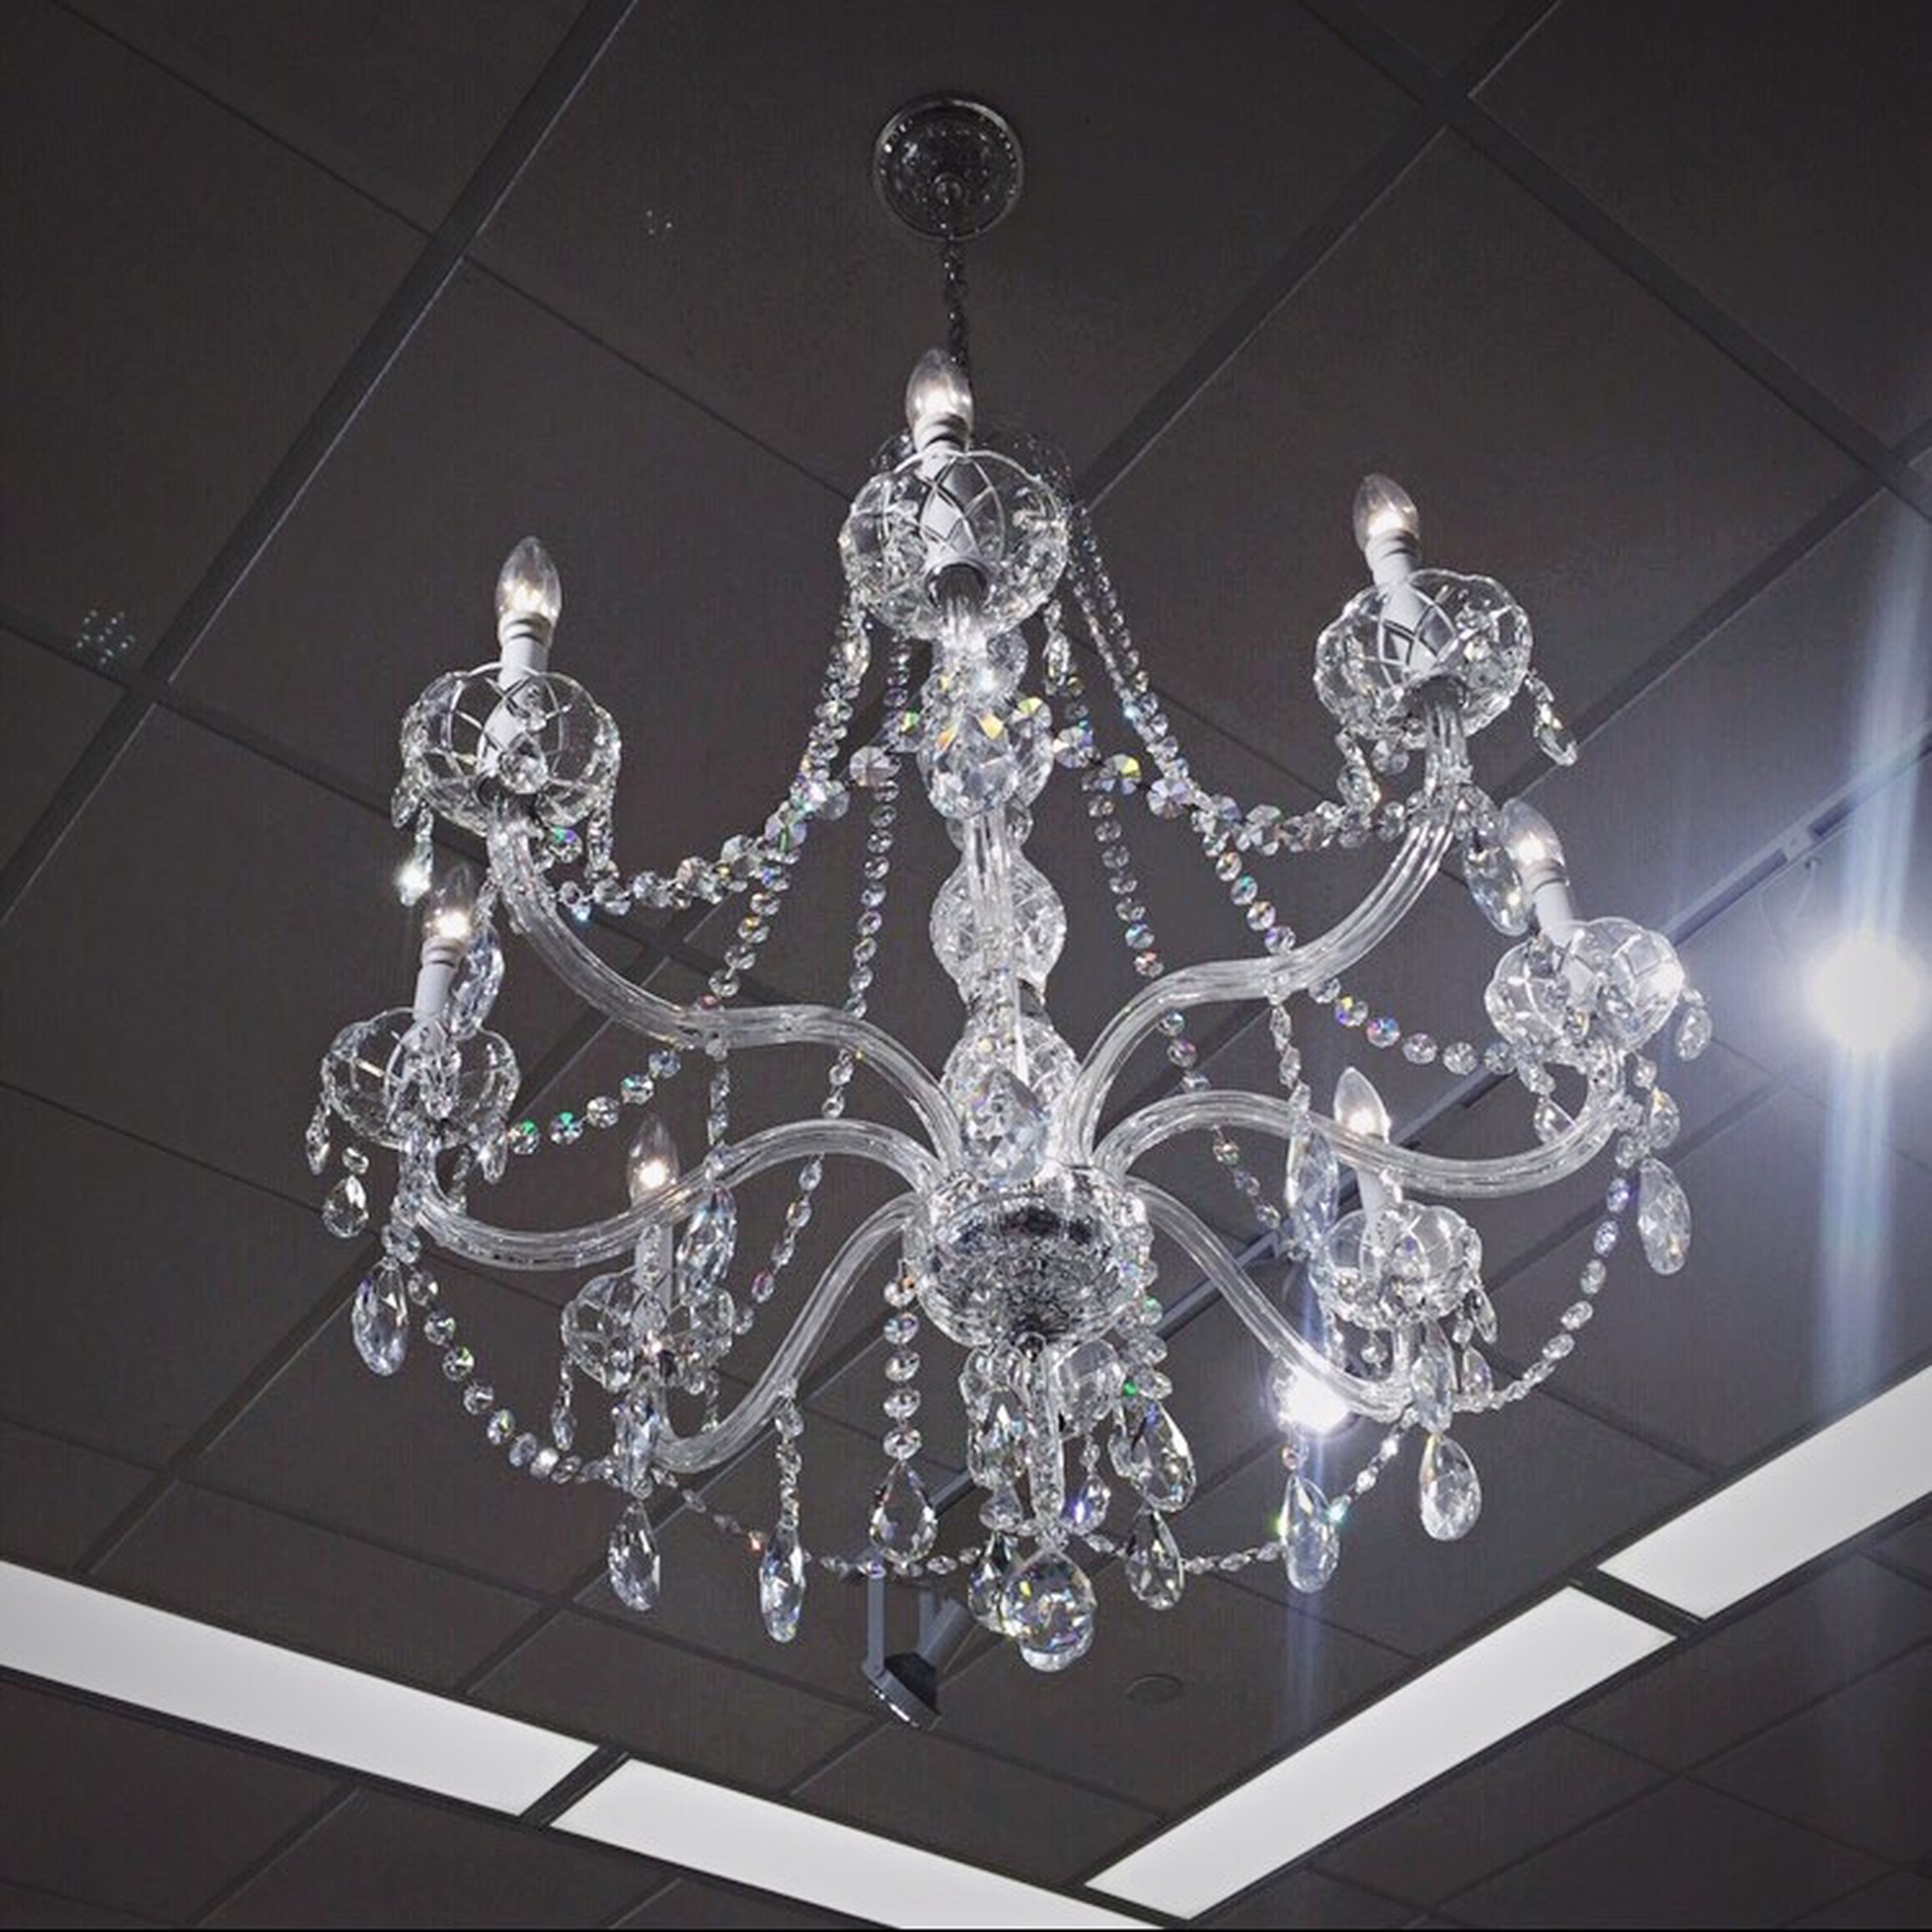 indoors, hanging, low angle view, decoration, ceiling, illuminated, lighting equipment, art and craft, chandelier, art, electricity, creativity, ornate, human representation, no people, decor, design, wall - building feature, reflection